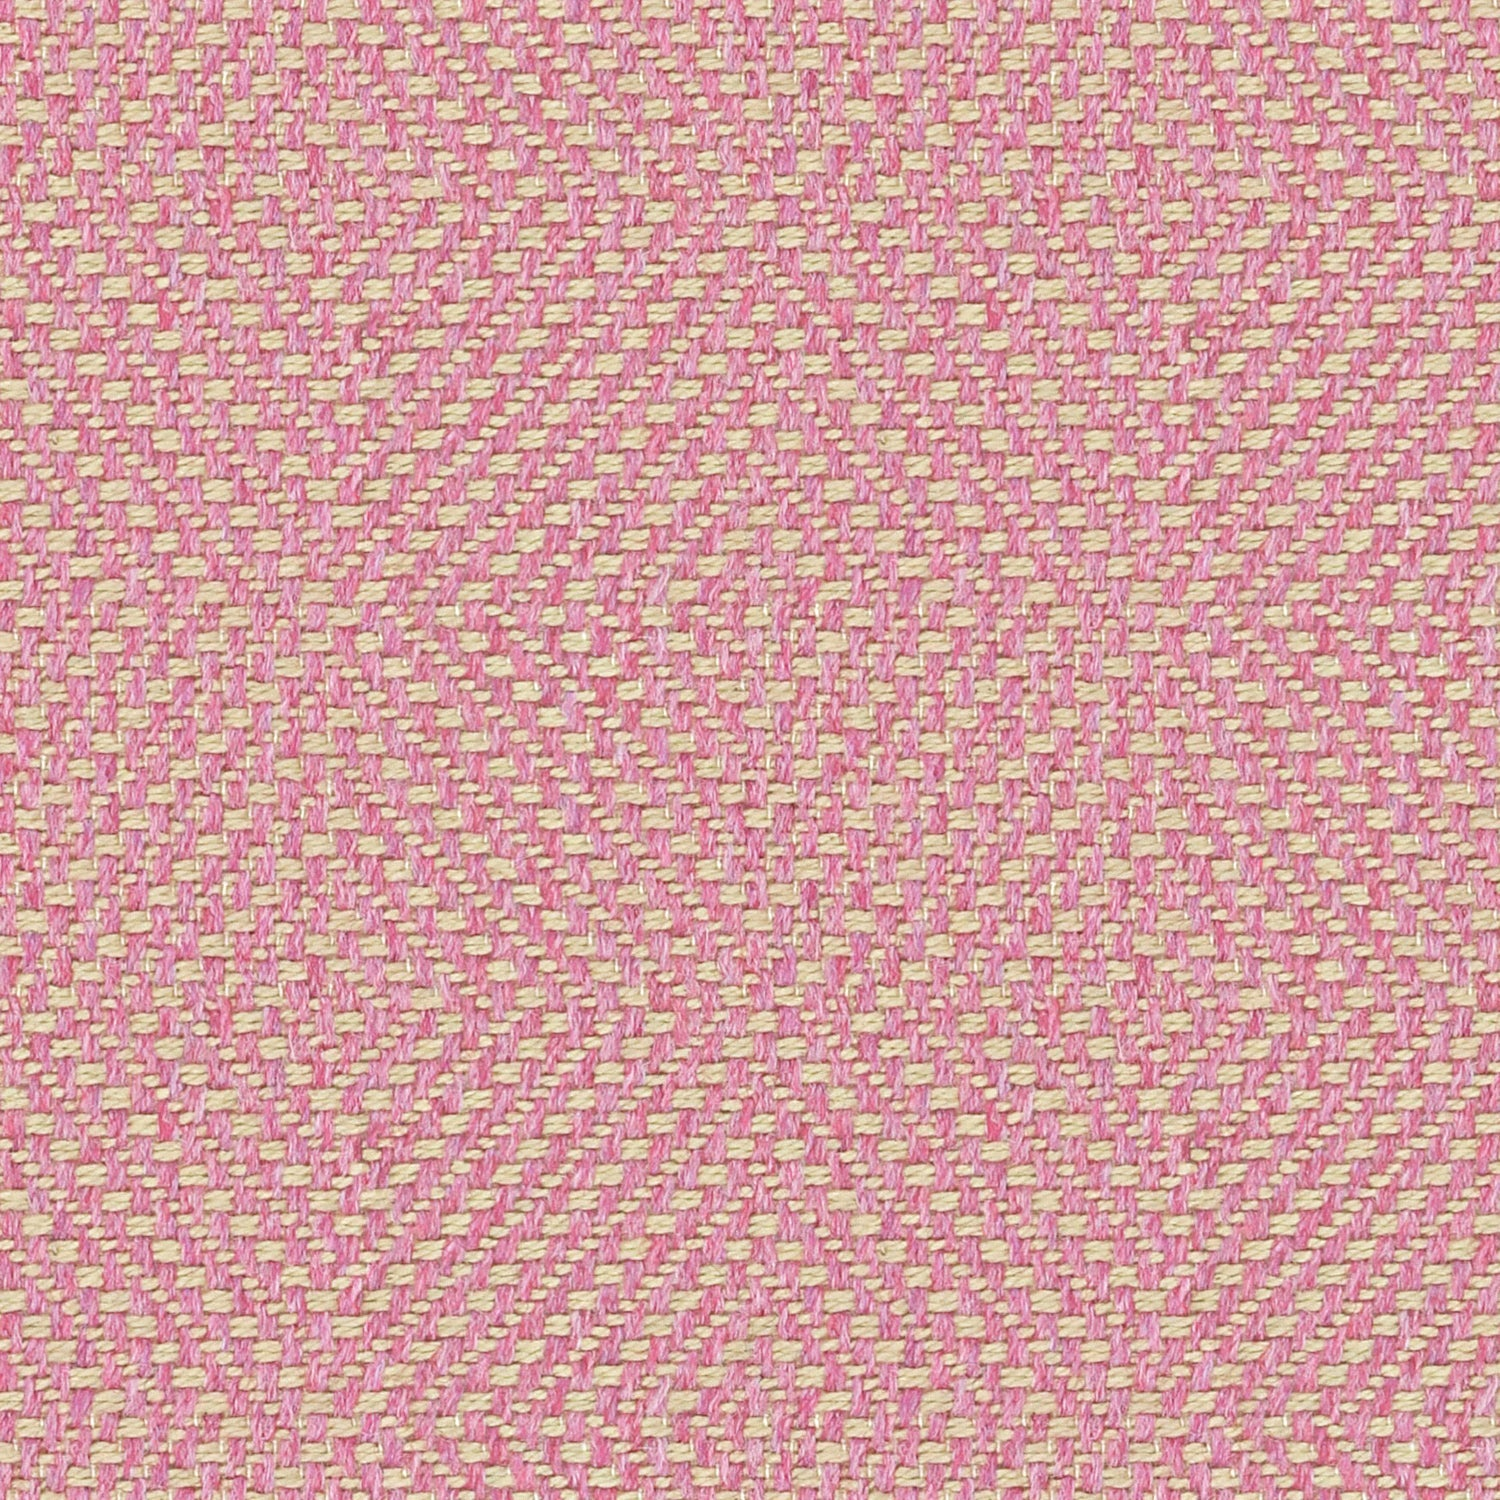 Pink fabric suitable for curtains and upholstery with a light geometric woven design